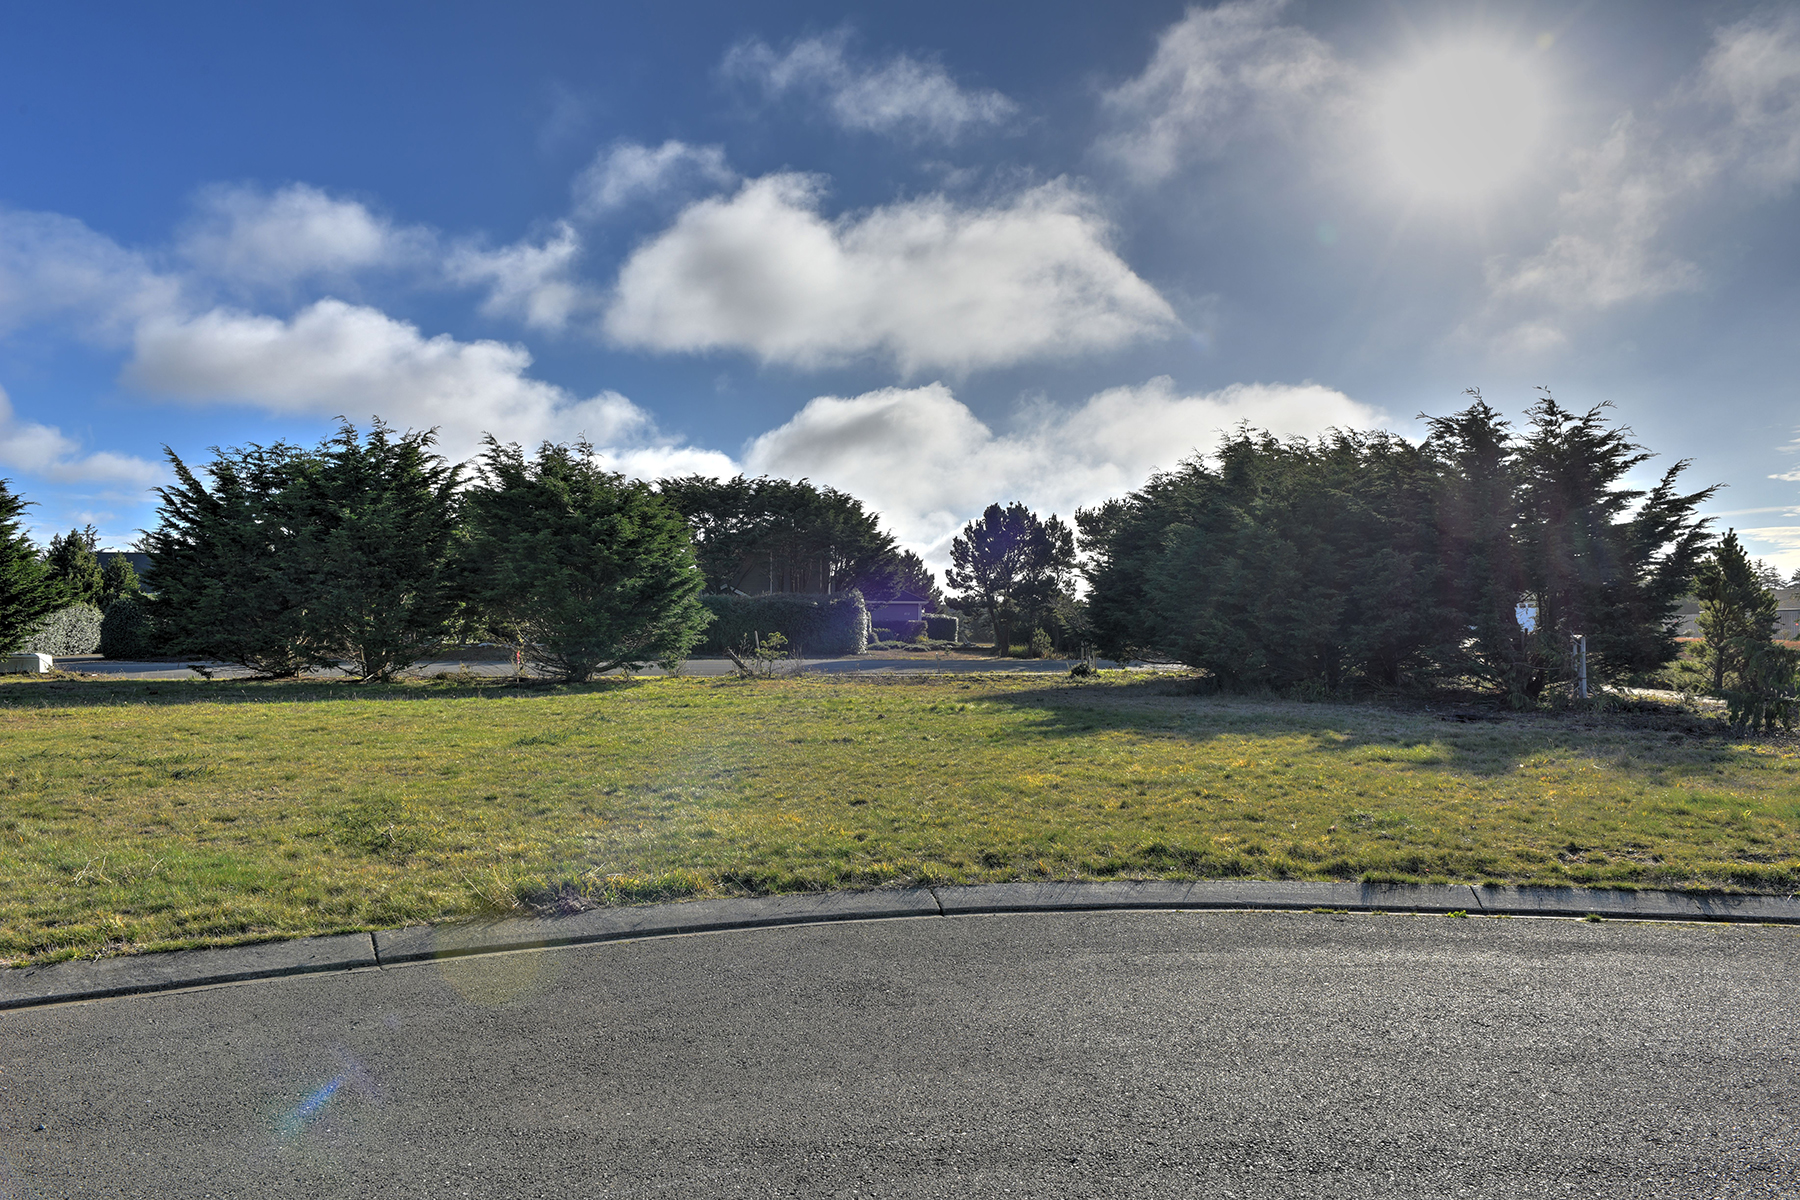 Land for Sale at Residential Lot in New Upscale Subdivision 752 Seabird Drive Bandon, Oregon 97411 United States